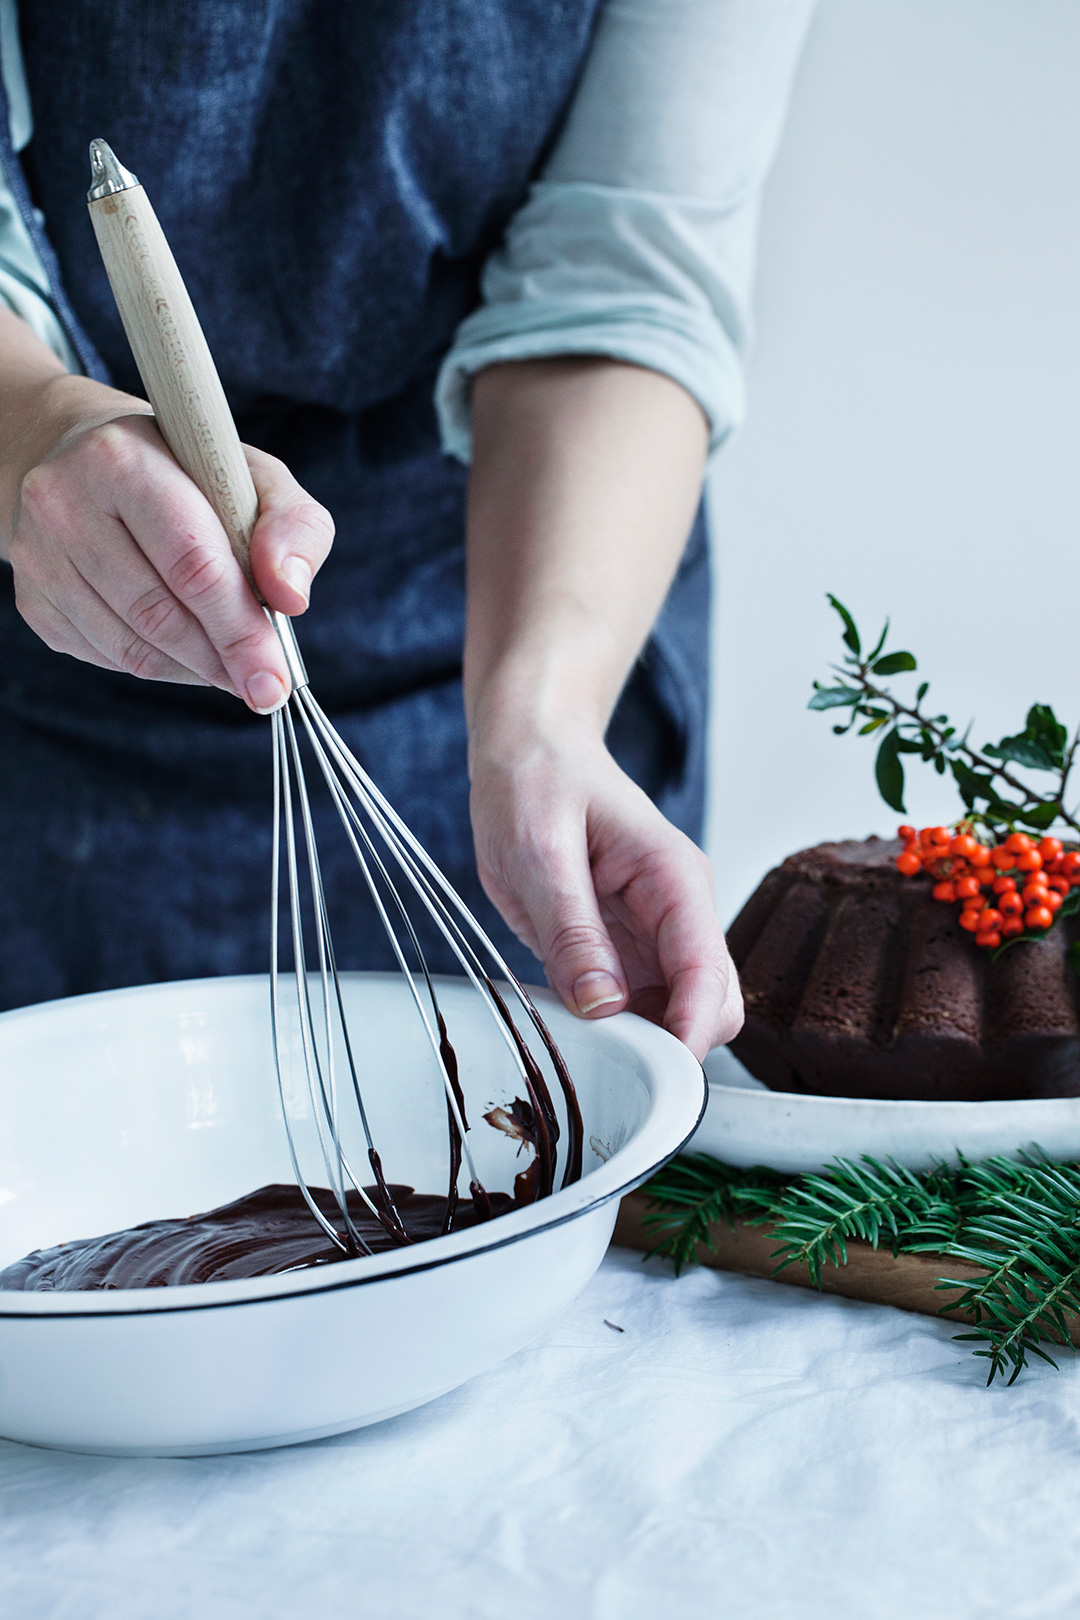 Chocolate Rosemary Bundt Cake. Perfect Holiday Dessert! #modernwifestyle #foodphotography